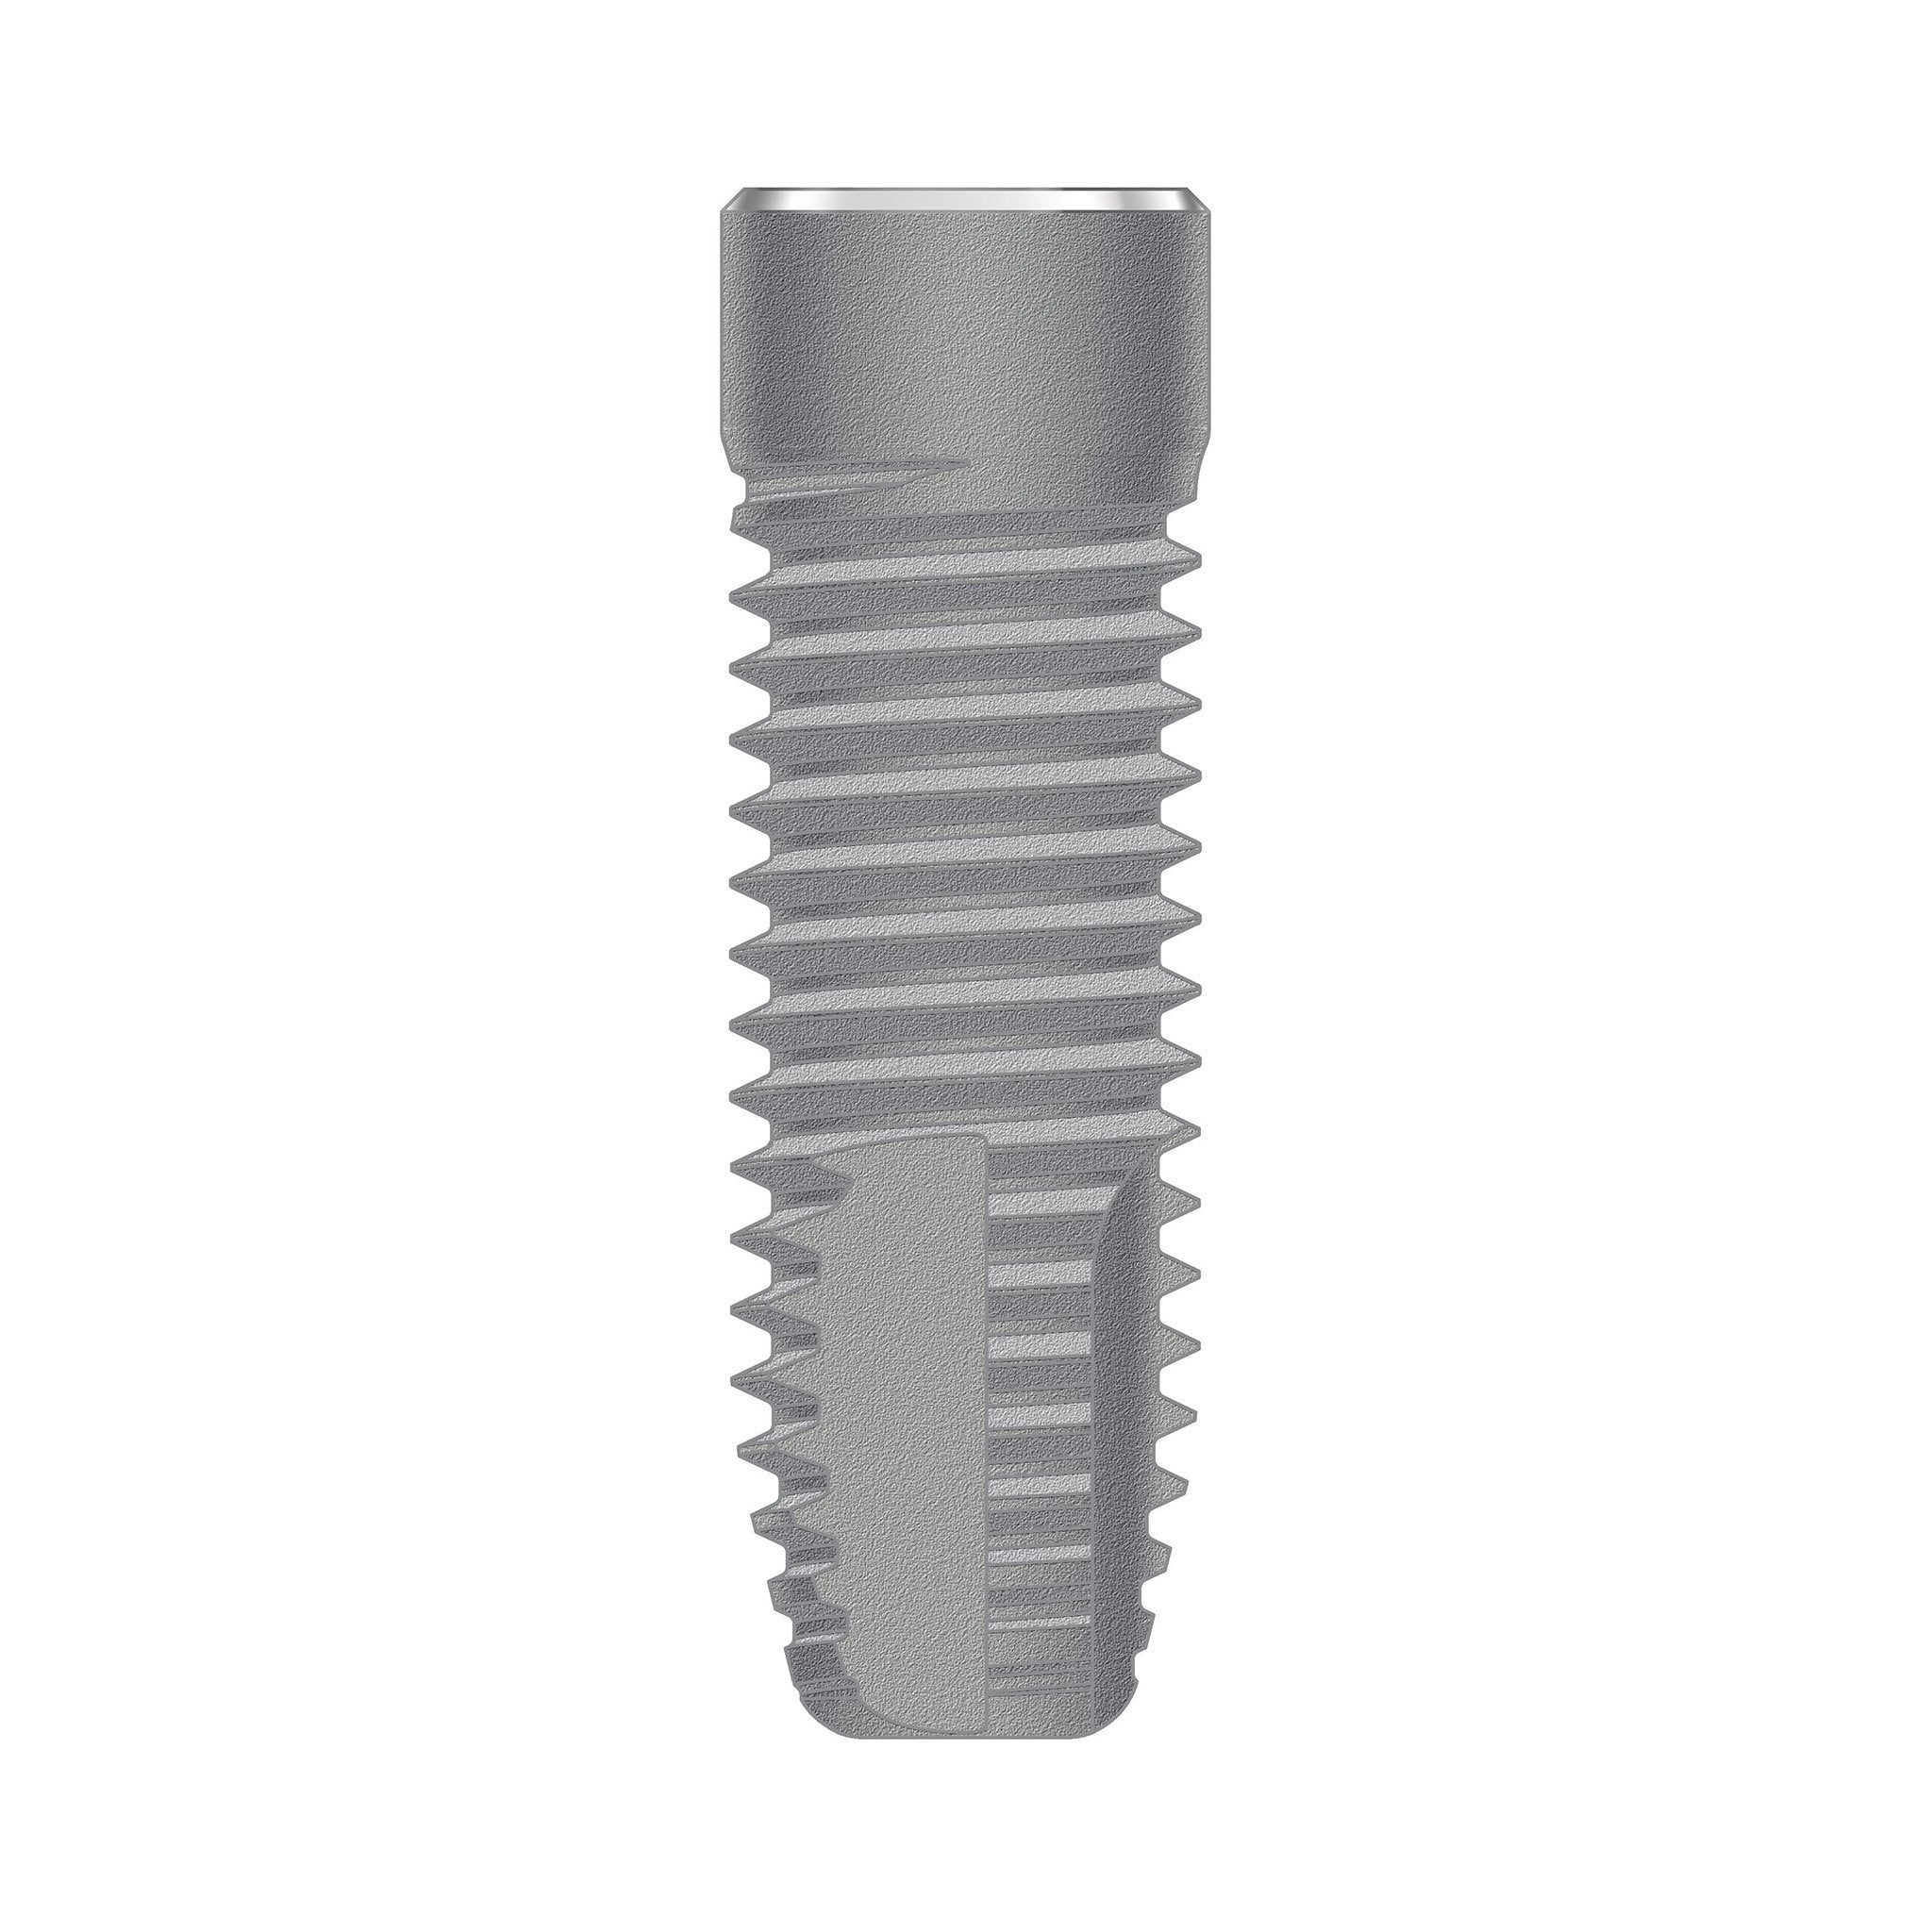 PrimaConnex® Straight Implant RD Ø 5.0 x 11.5mm | K4